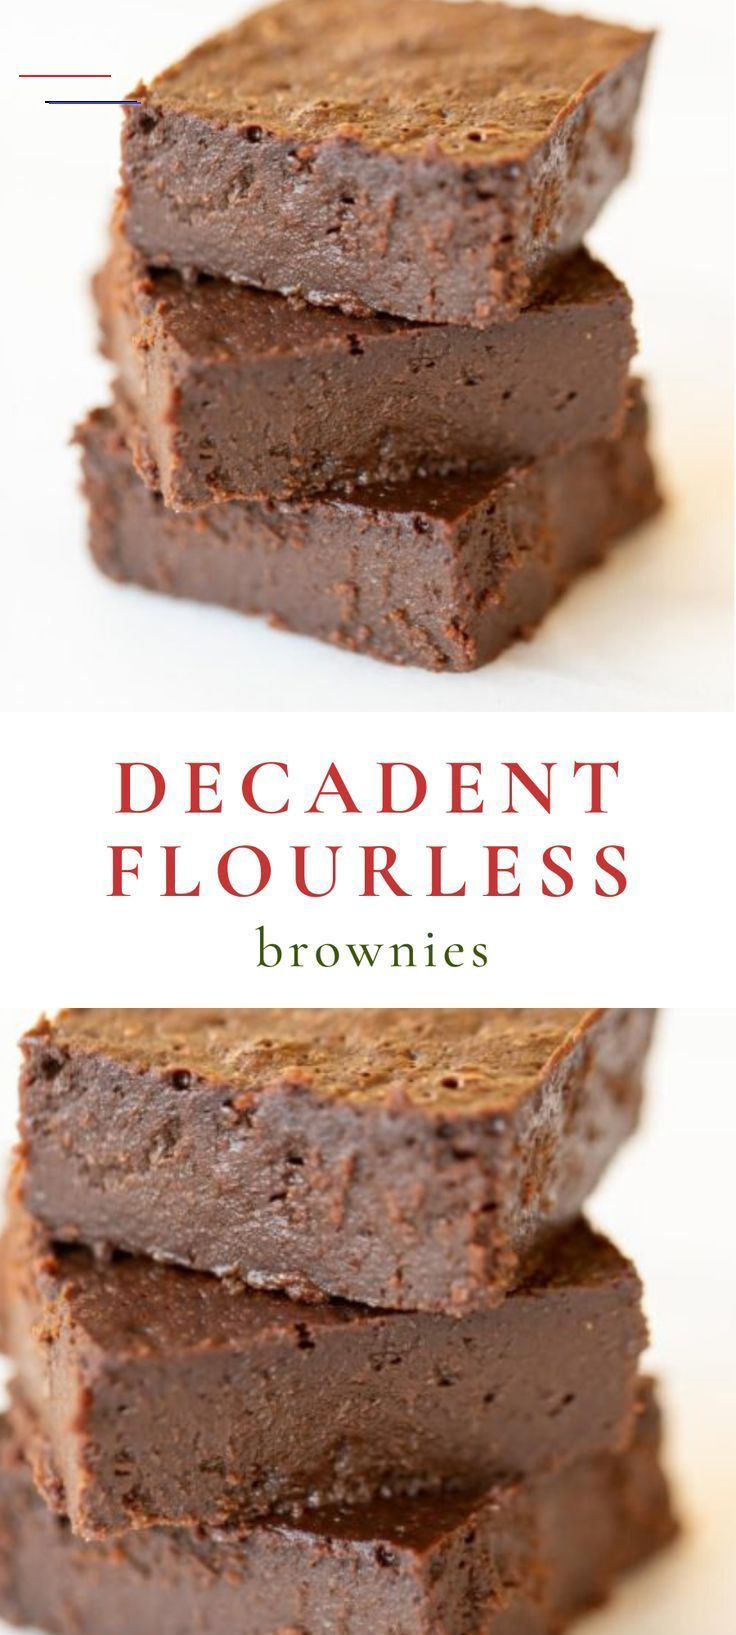 These decadent flourless brownies are made with dark chocolate, which creates the most incredible gluten free brownies you've ever had! They are easy to make with just a handful of ingredients and are so rich and flavorful. These will become your go to recipe for no flour brownies! <a class=pintag href=/explore/brownies/ title=#brownies explore Pinterest>#brownies</a> <a class=pintag href=/explore/glutenfree/ title=#glutenfree explore Pinterest>#glutenfree</a>  These decadent flourless brownies